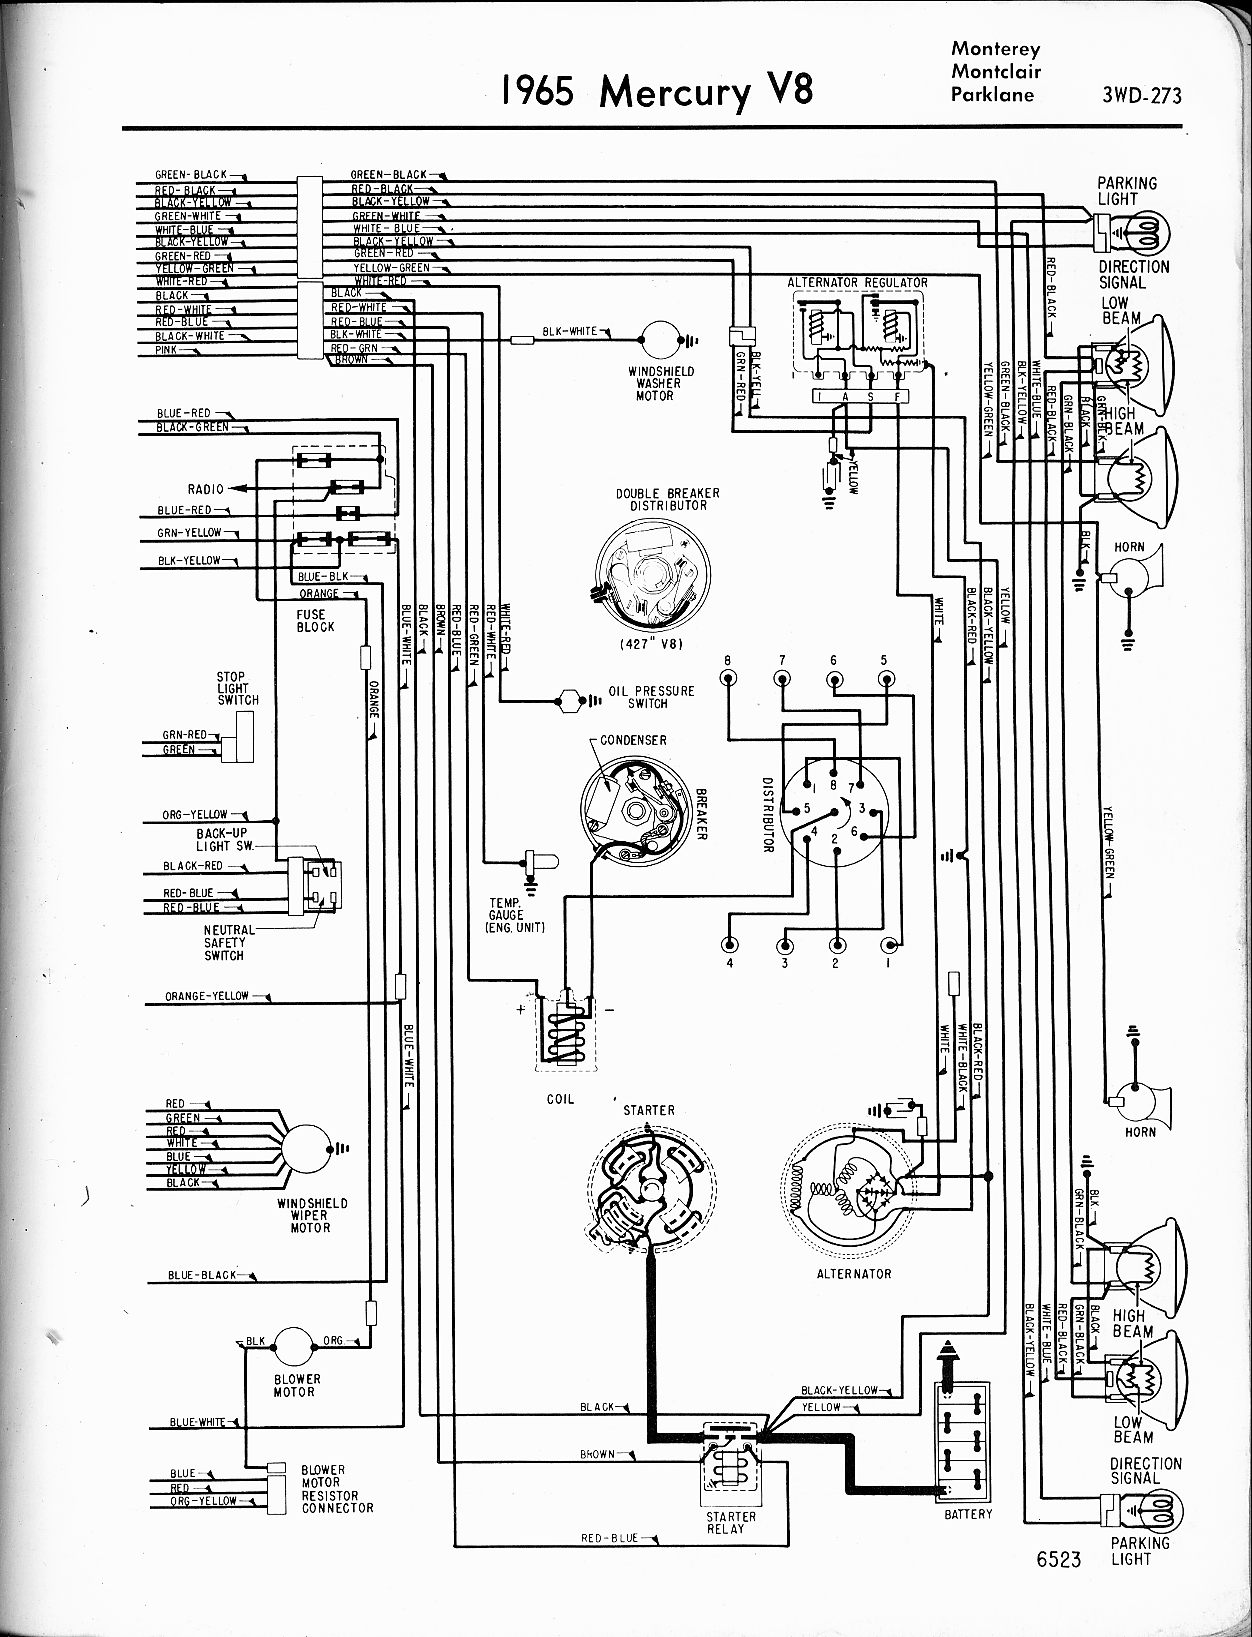 1978 Mercury Cougar Ignition Switch Wiring Diagram